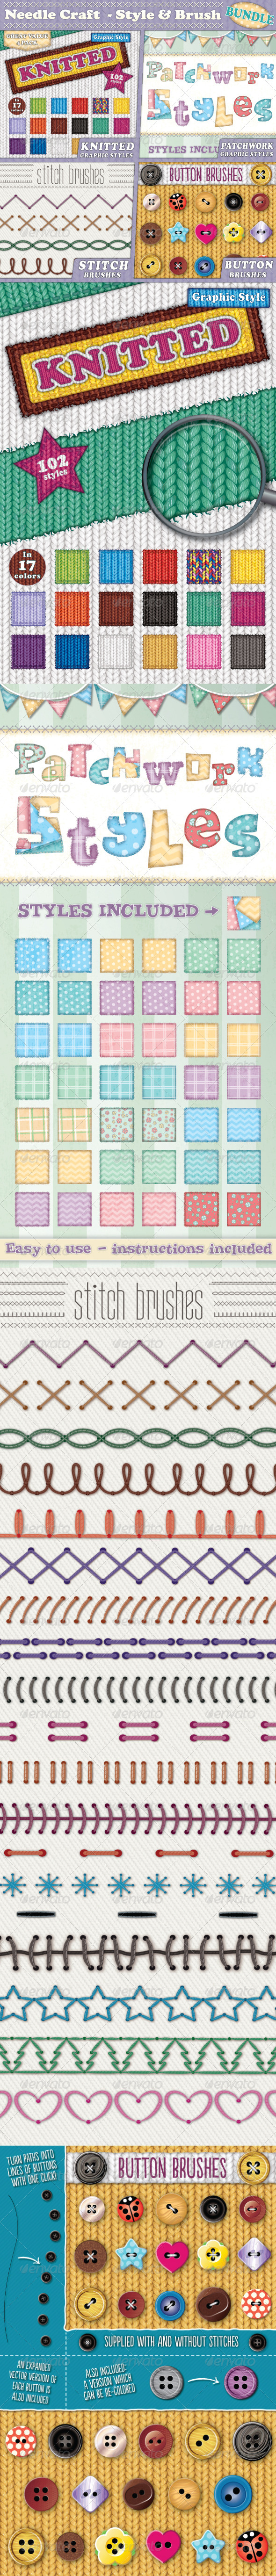 GraphicRiver Needle Craft Style & Brush Bundle 8645077